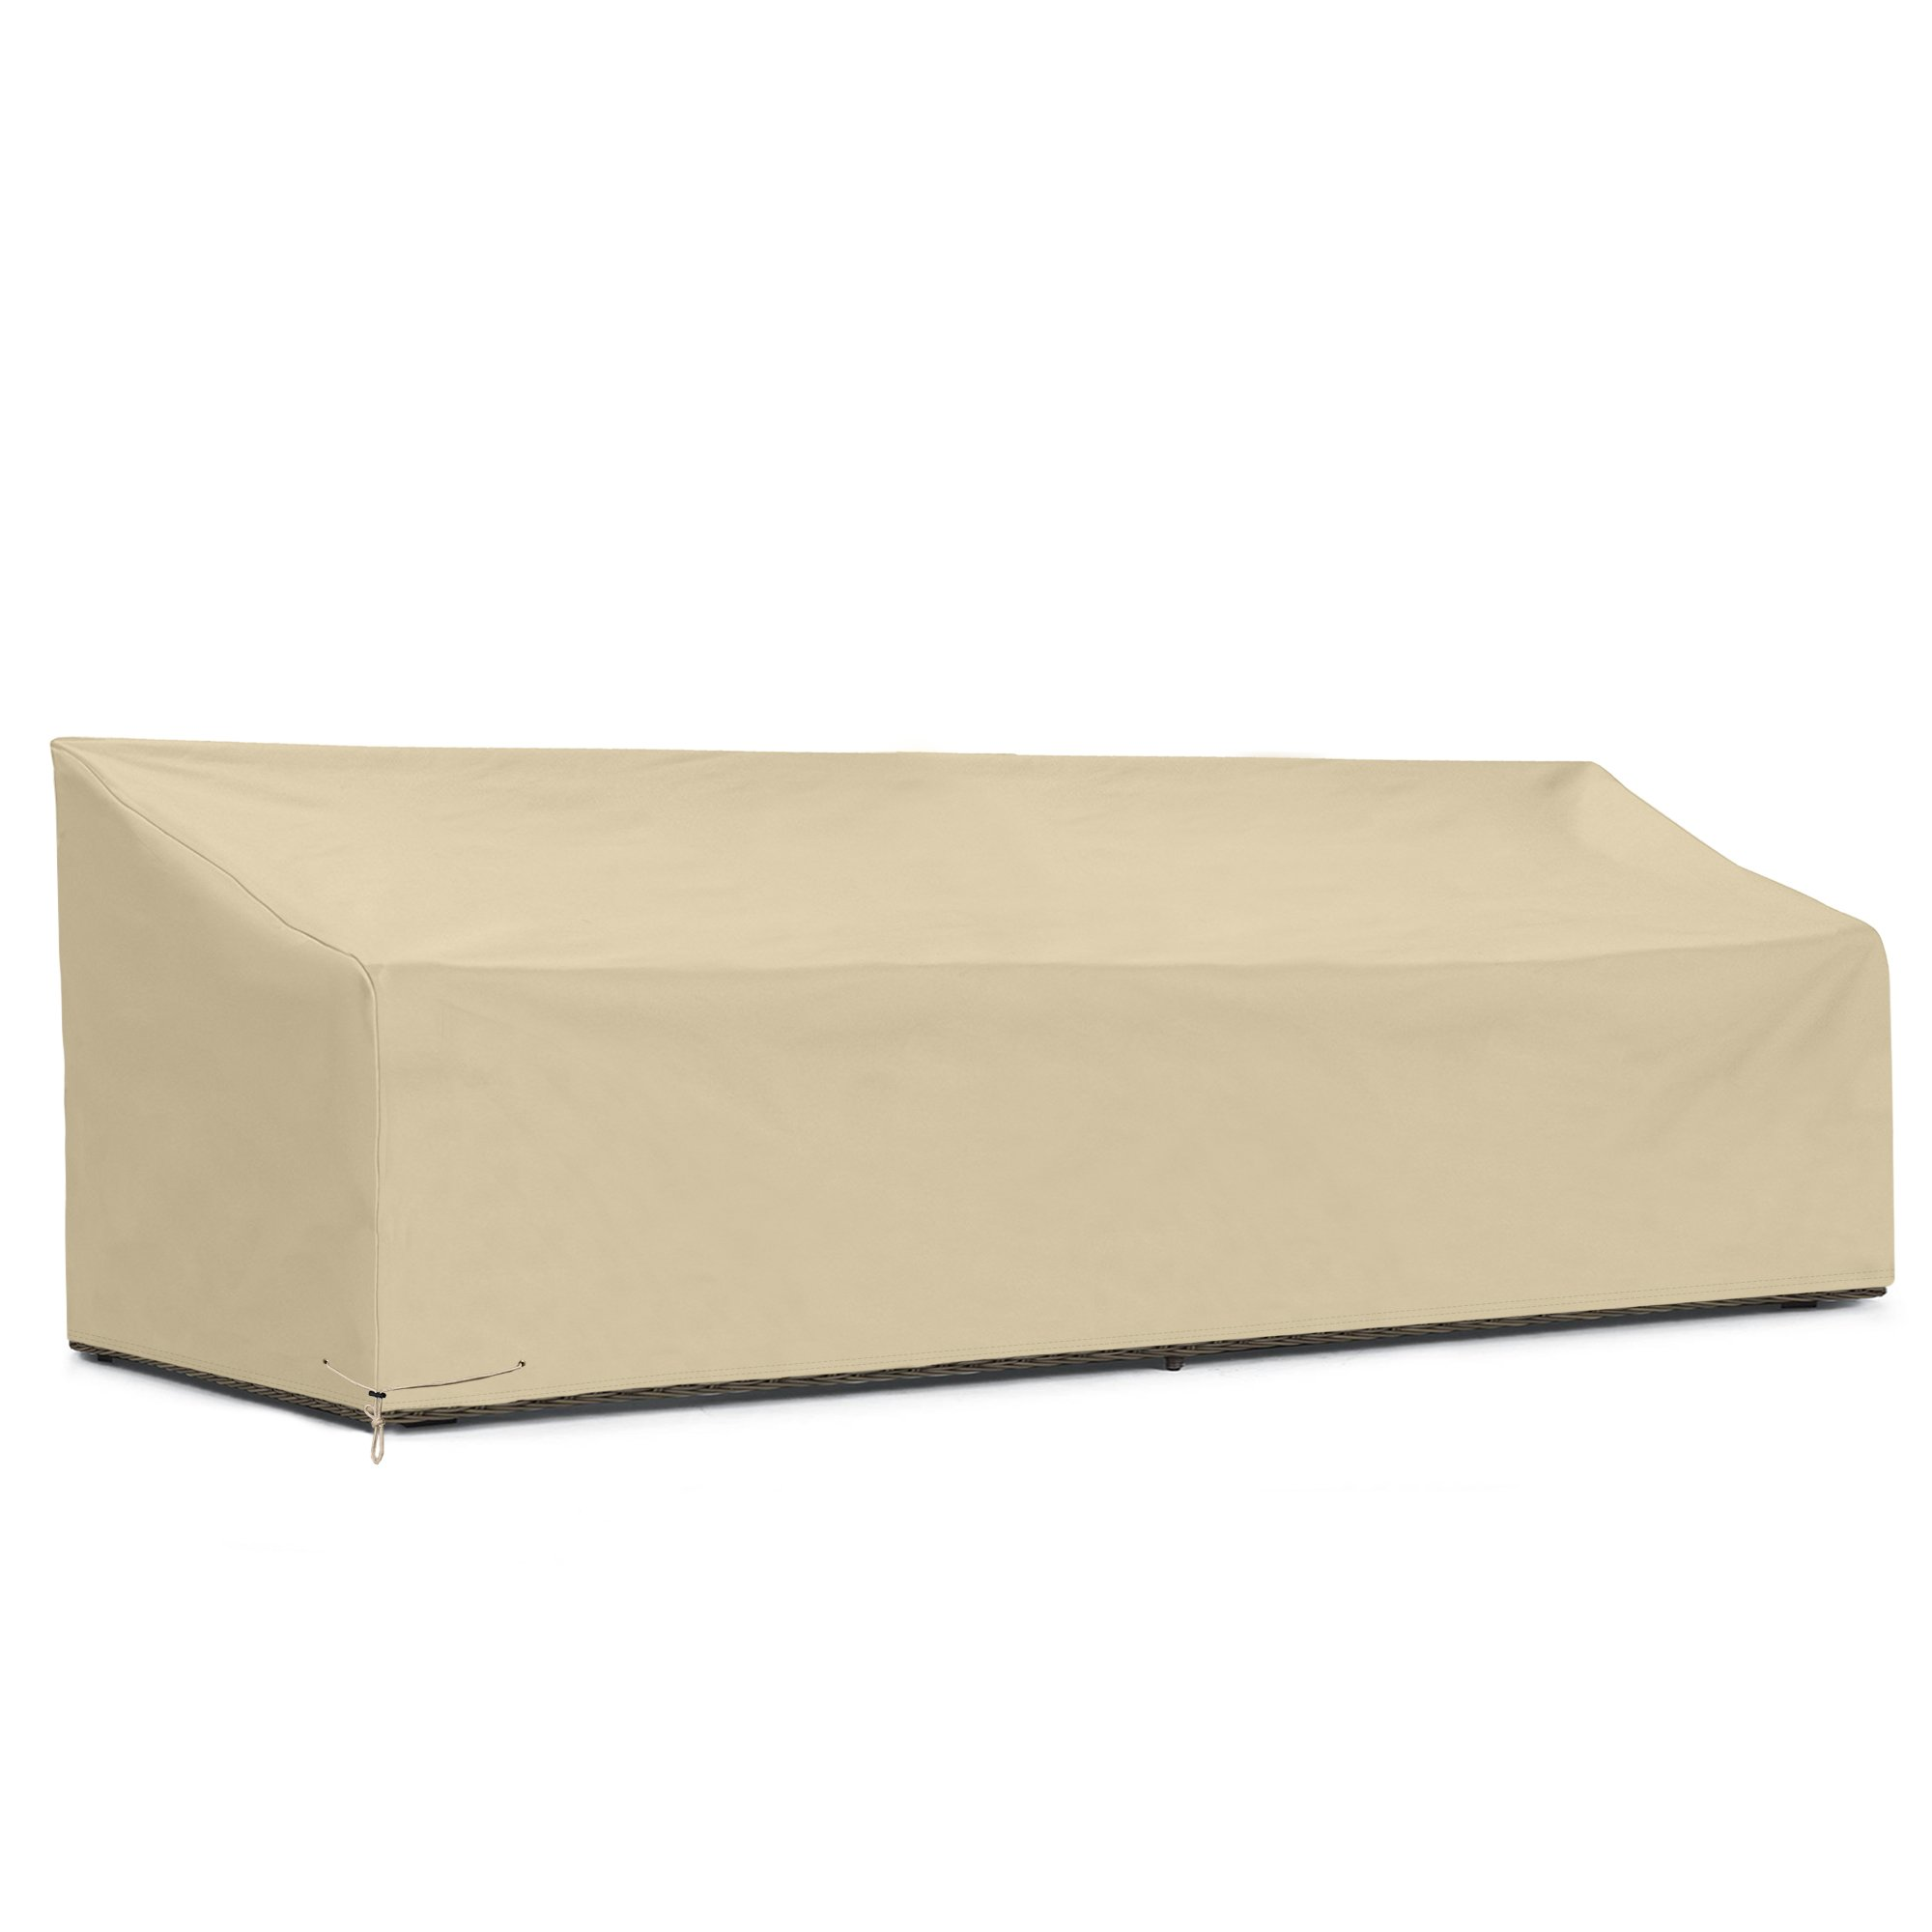 SunPatio Outdoor Large Bench Cover 110 Inch, Patio Veranda Sofa Cover with Waterproof Sealed Seam, Patio Furniture Cover, All Weather Protection, Beige by SunPatio